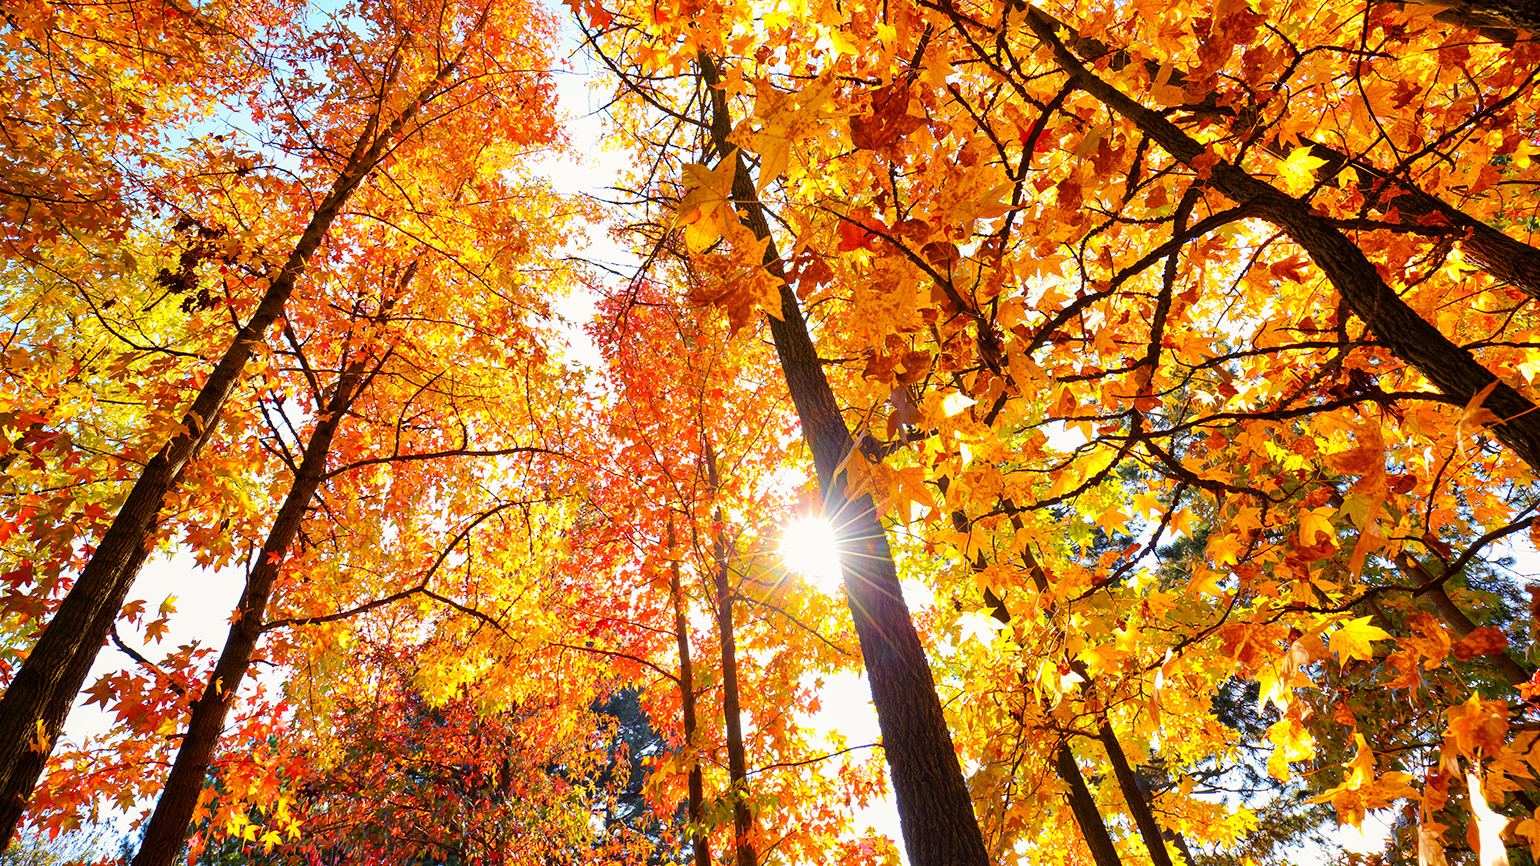 Looking skyward through trees filled with colorful autumnal foliage